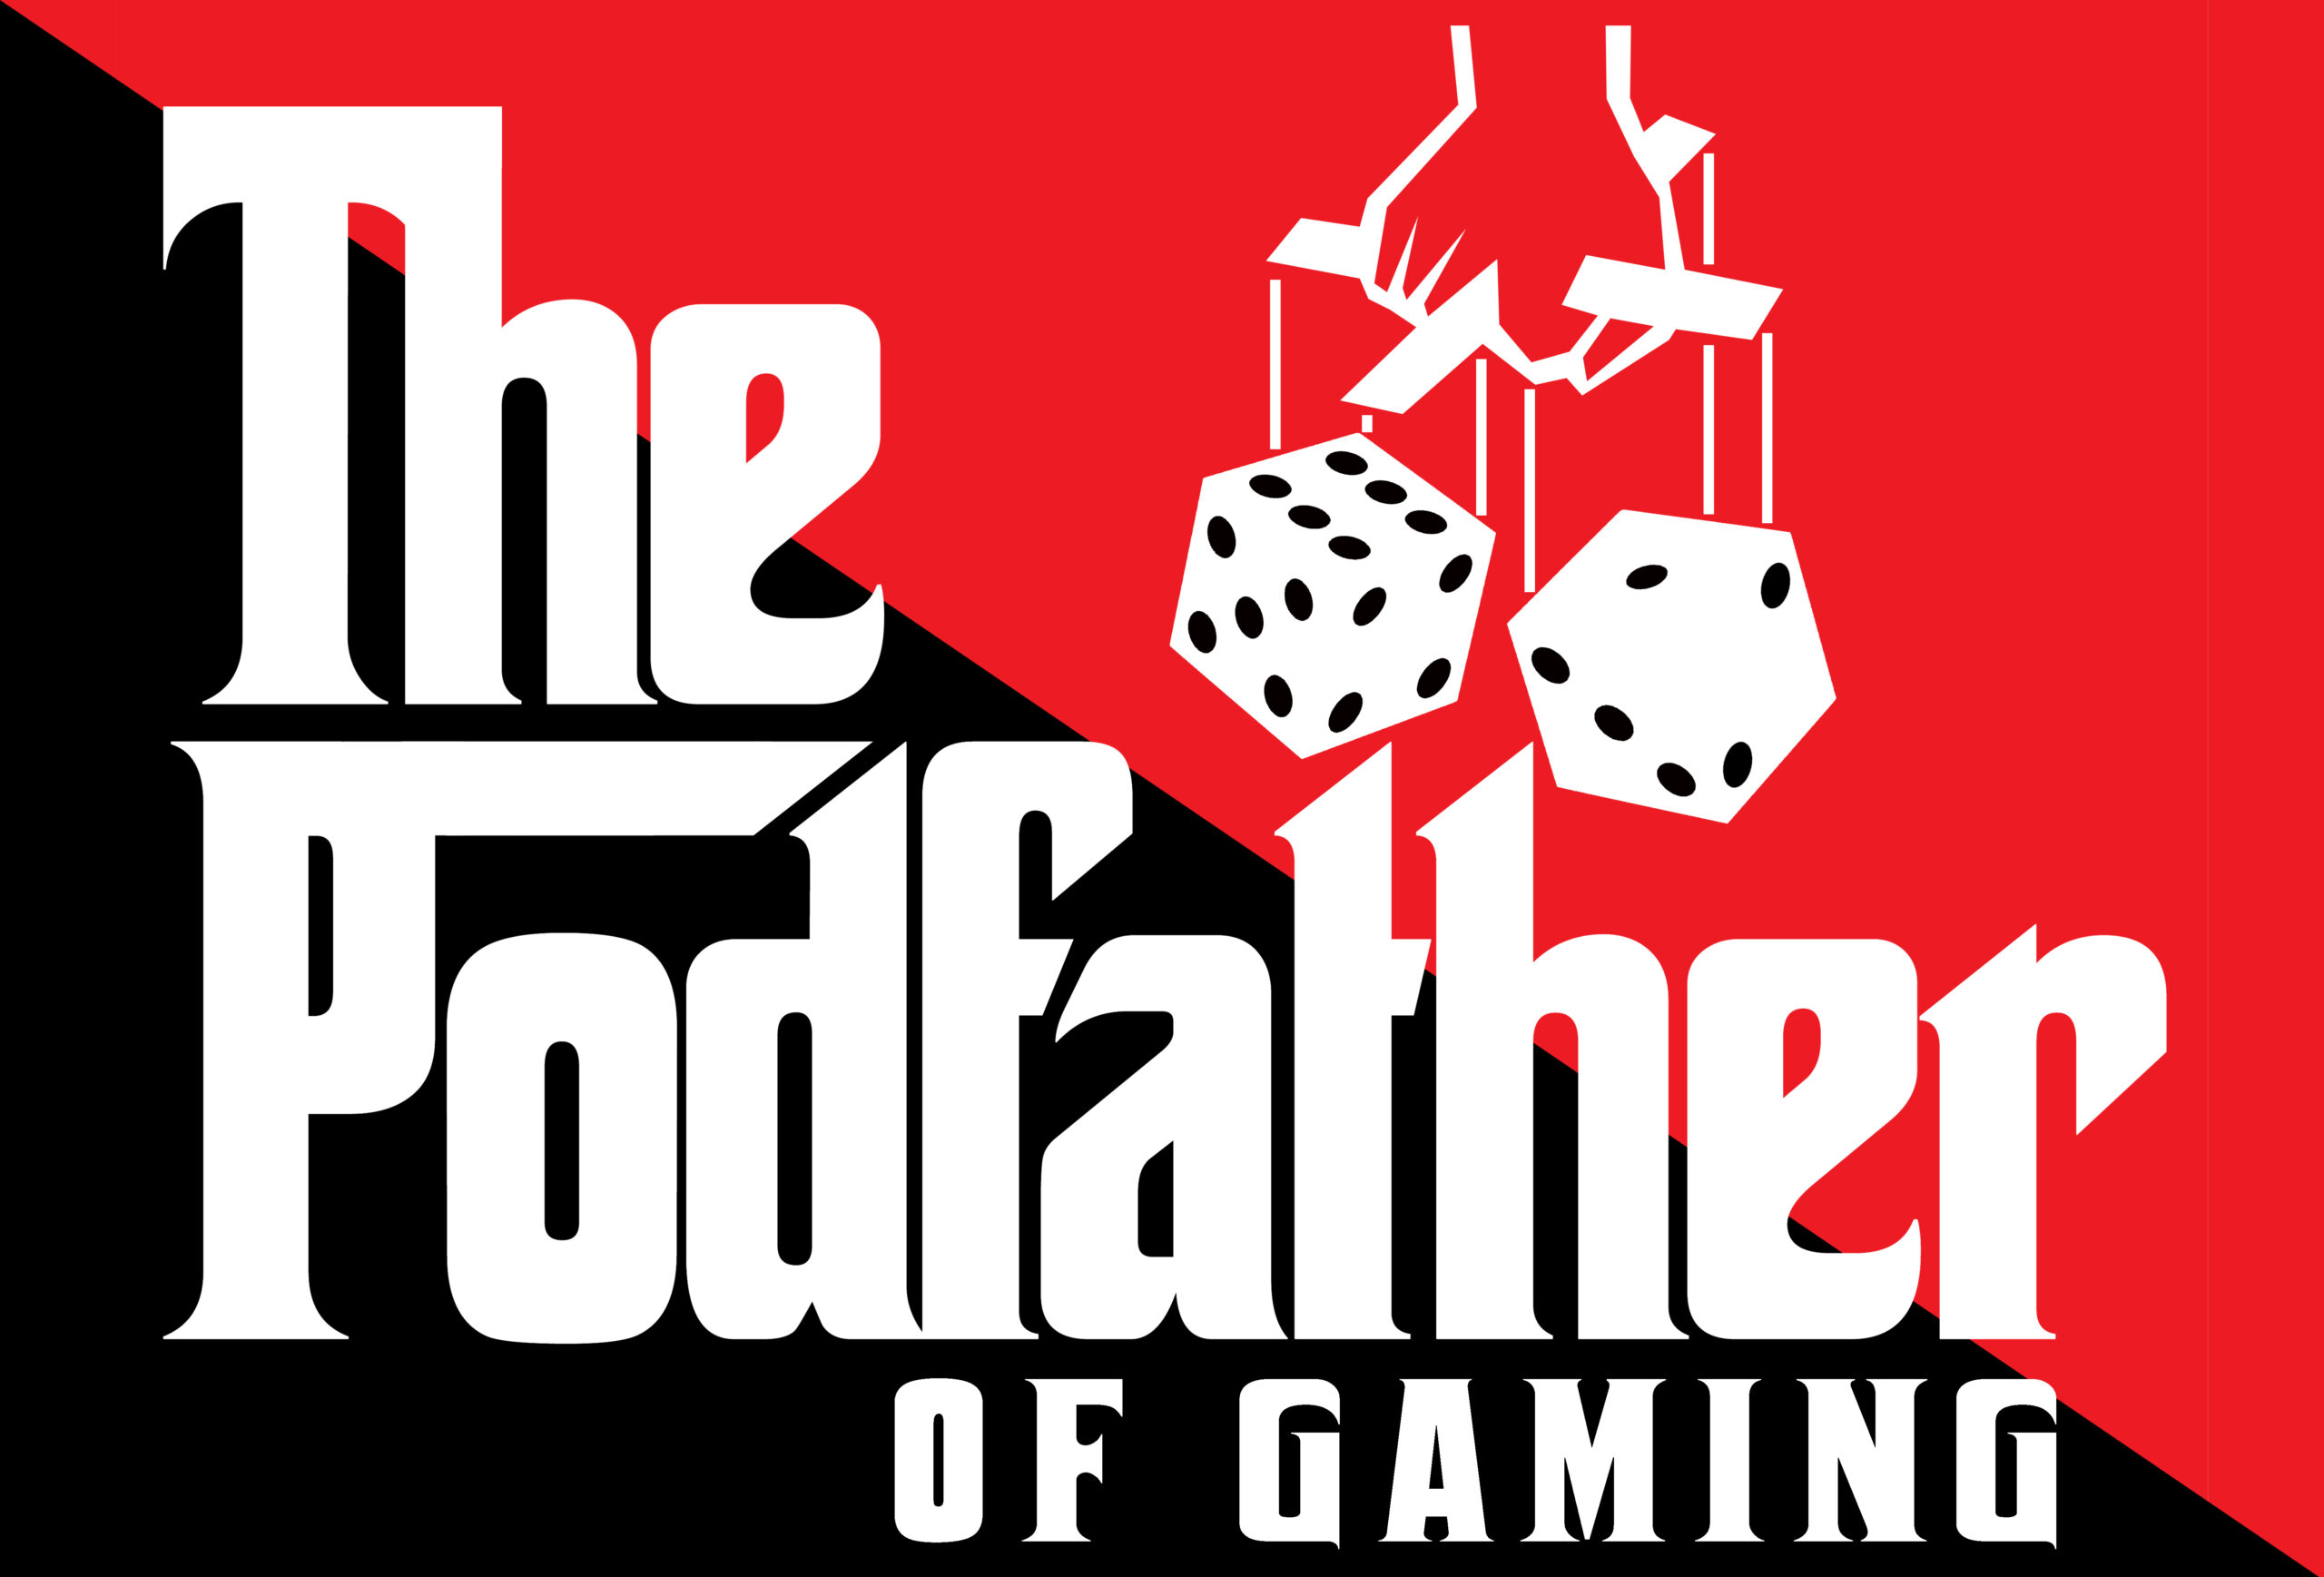 The Podfather of Gaming